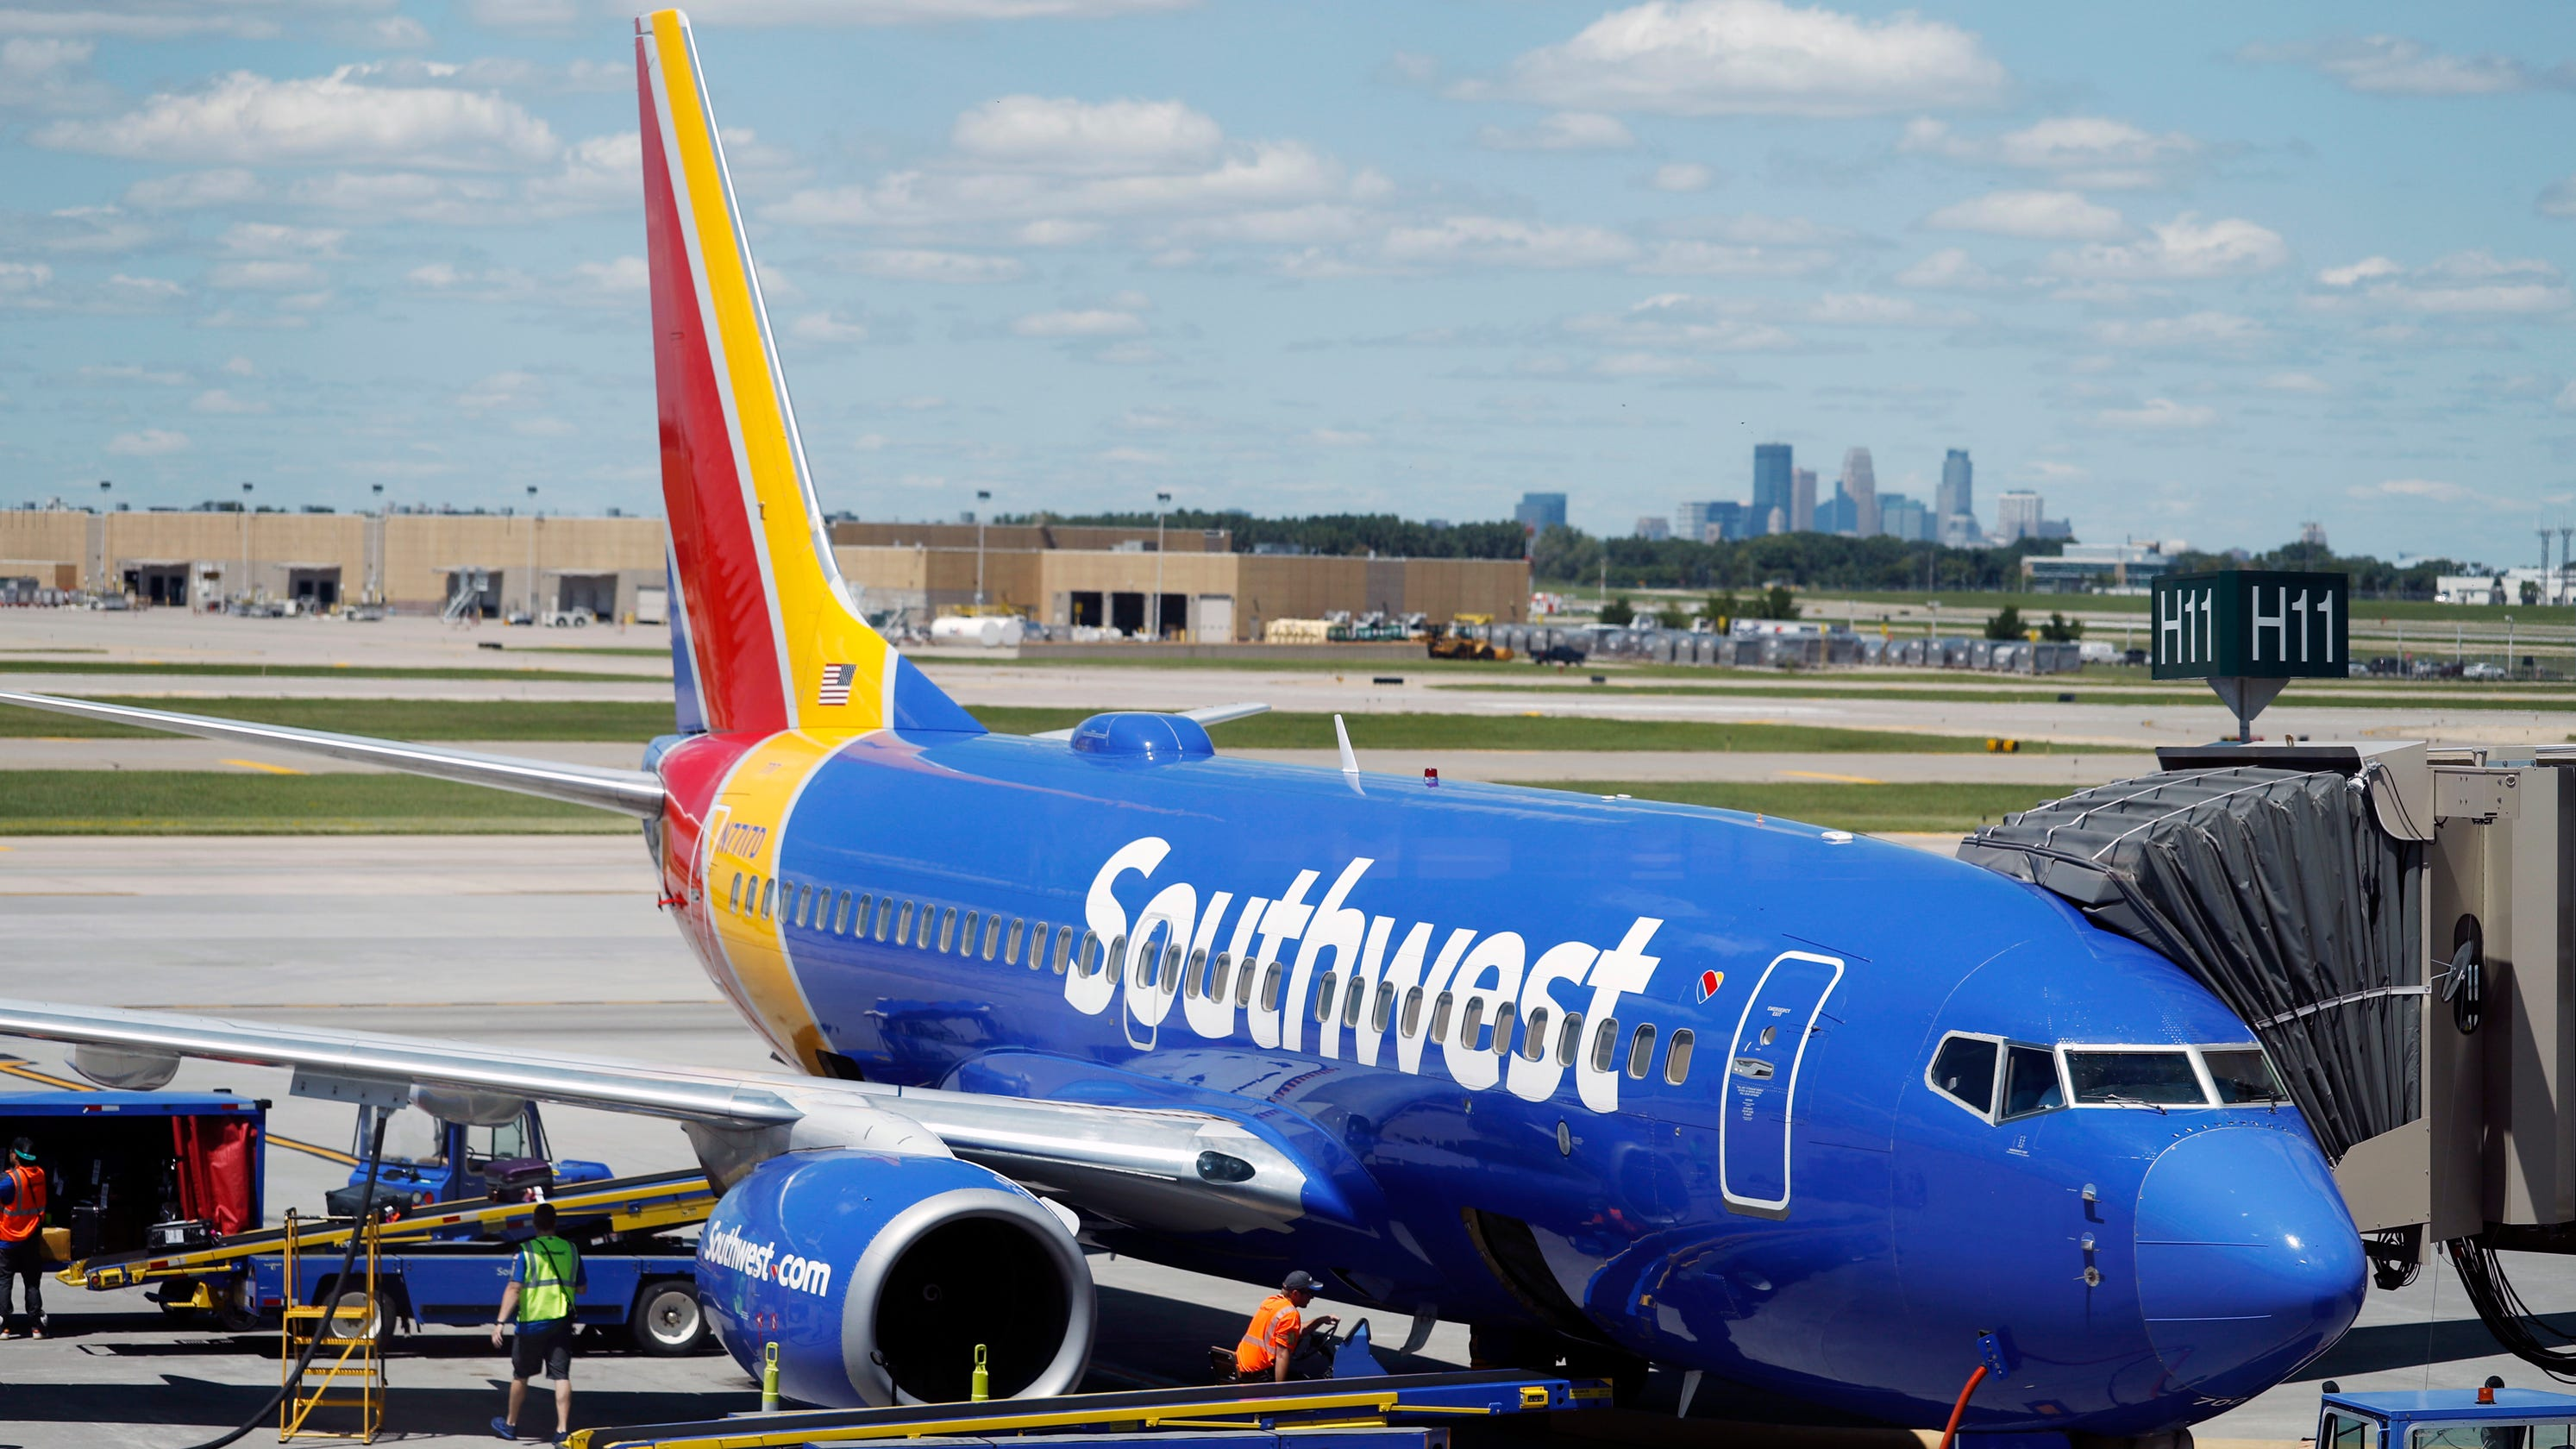 Handicapped man had to pre-board flight alone without wife